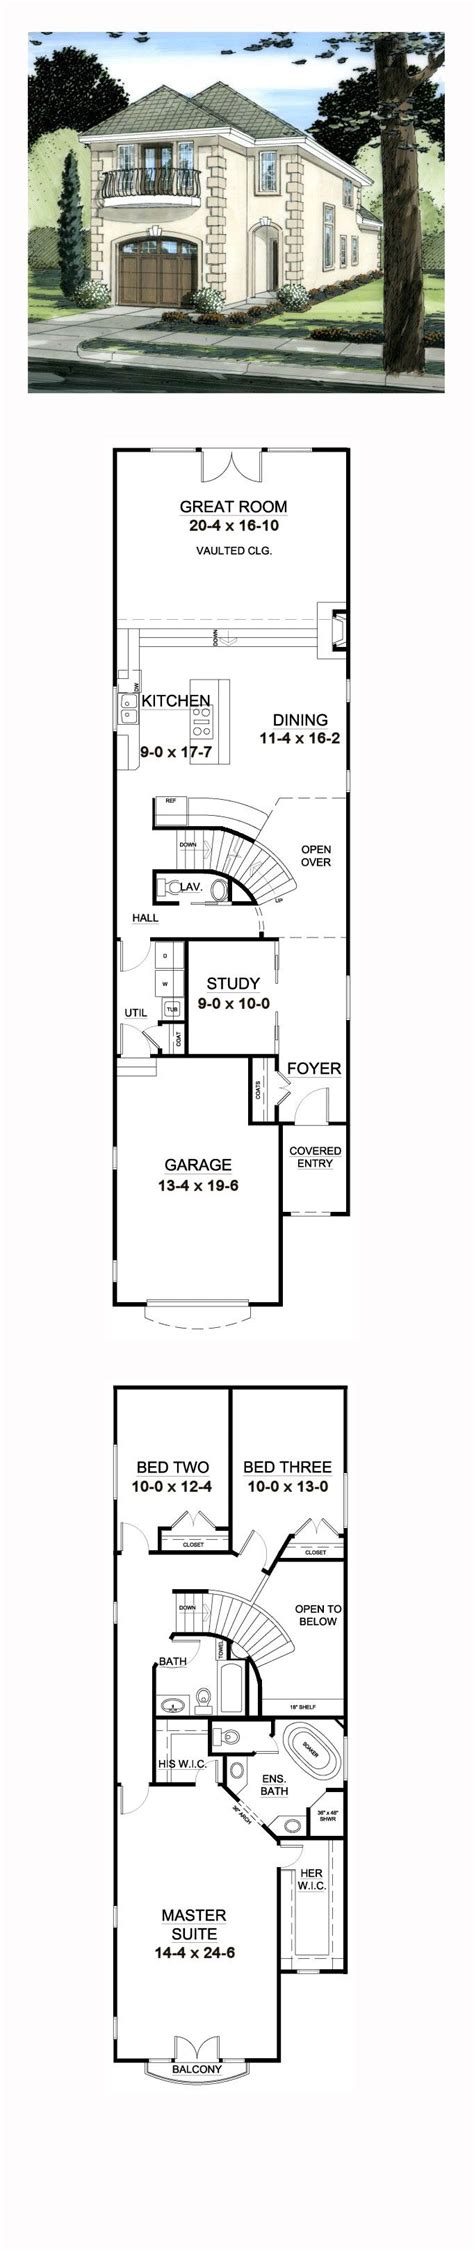 house designs floor plans narrow lots best 25 narrow house plans ideas on narrow